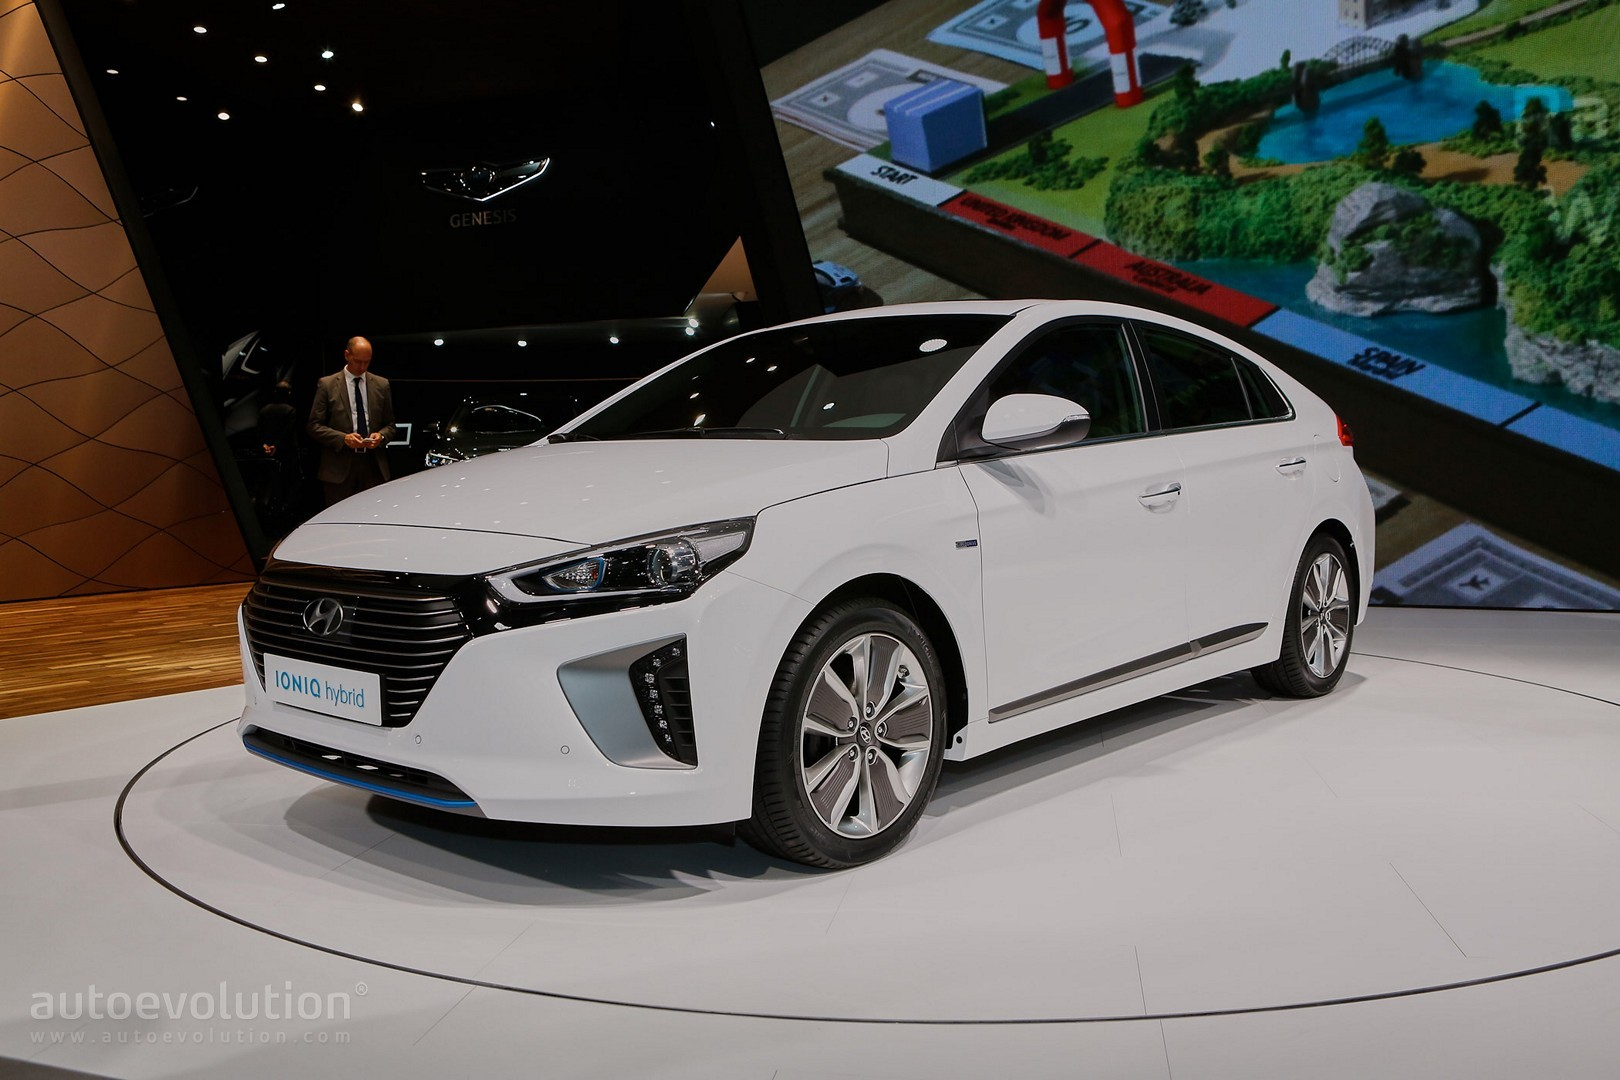 Hyundai-Kia Will Recall About 240,000 Cars After ...